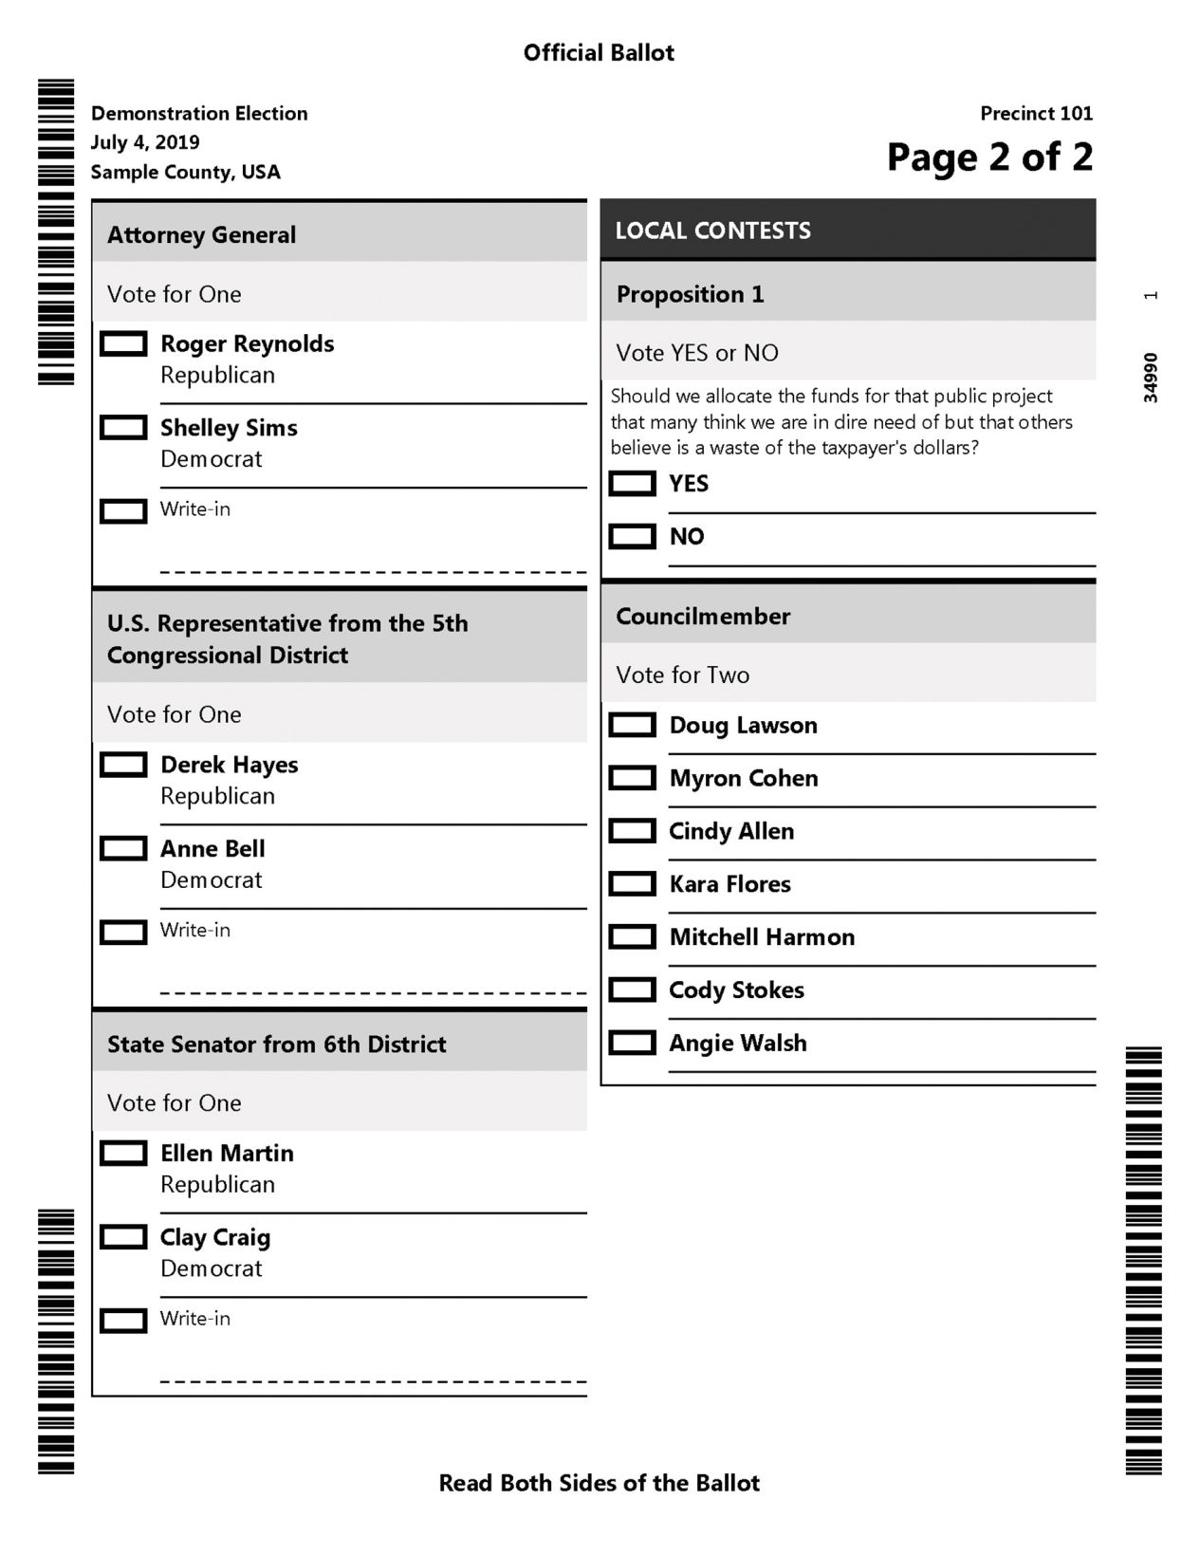 New voting system